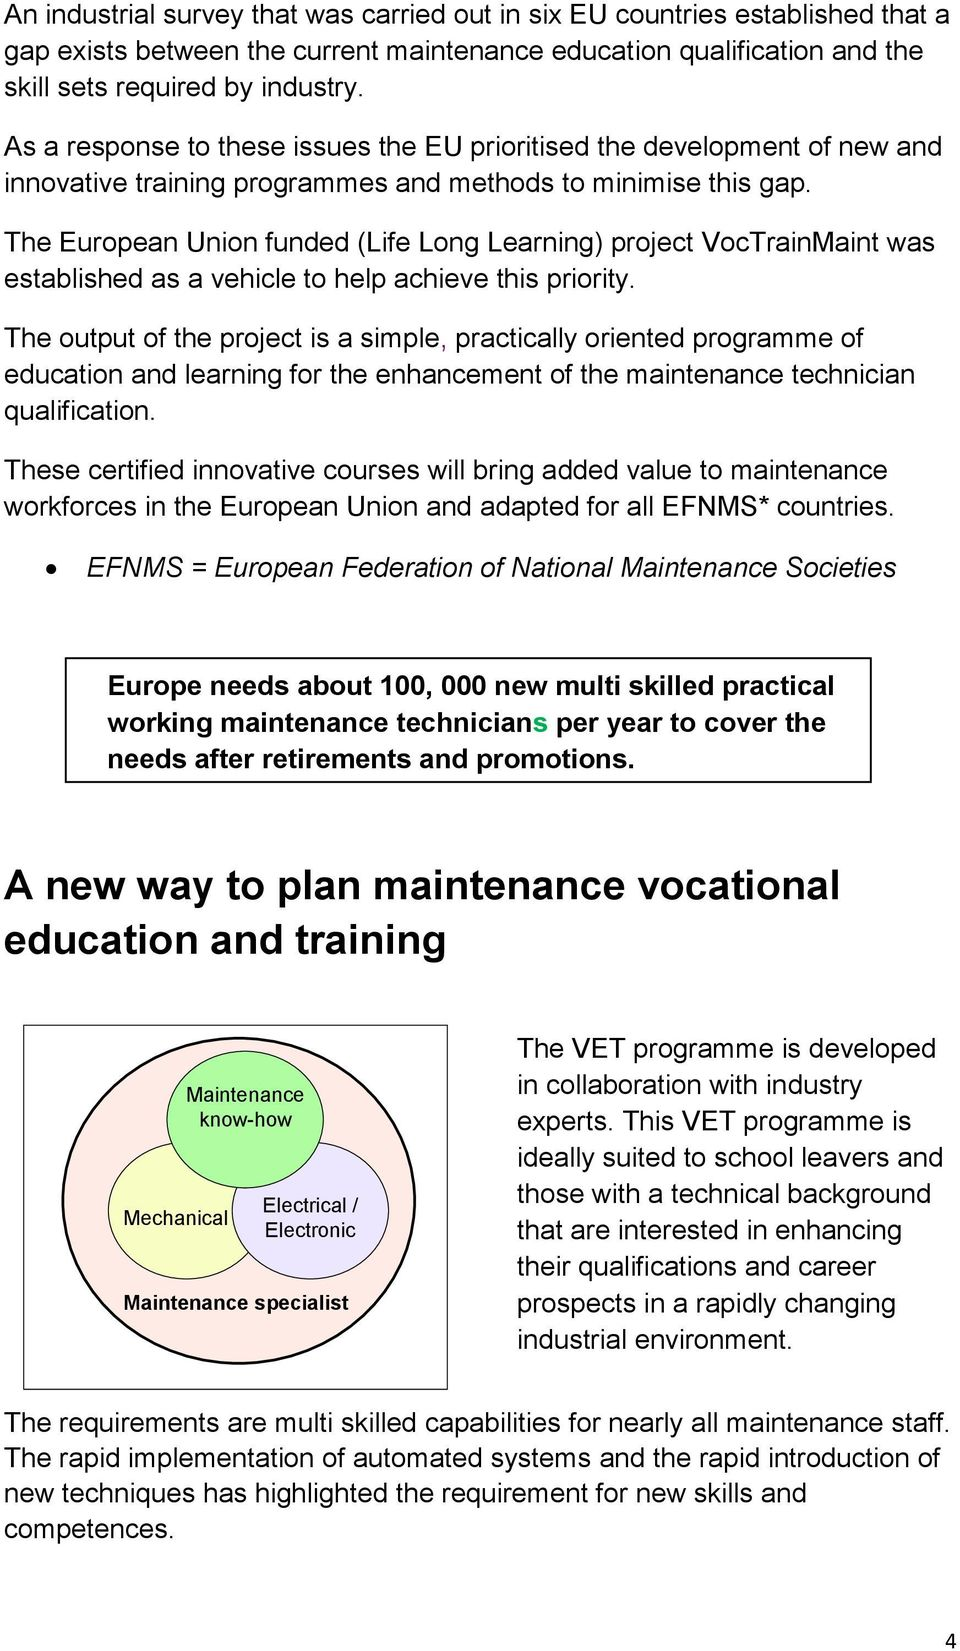 The European Union funded (Life Long Learning) project VocTrainMaint was established as a vehicle to help achieve this priority.